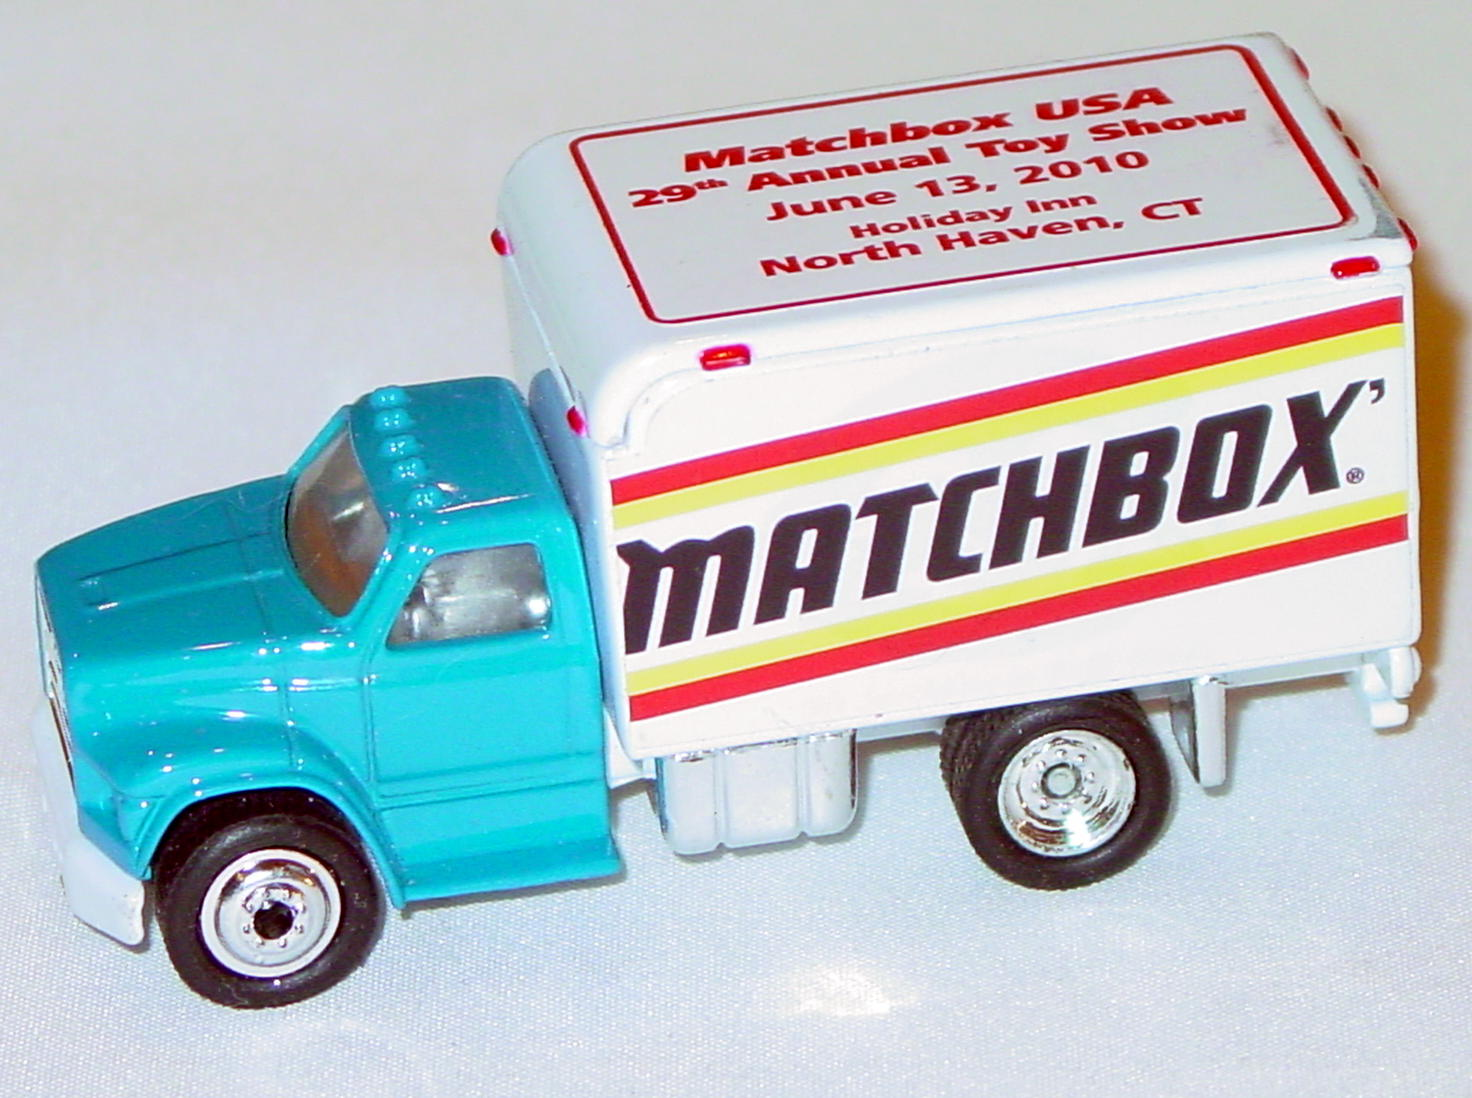 ASAP-CCI 01 - FS001 Ford 800 Del Van Blue Matchbox 2010